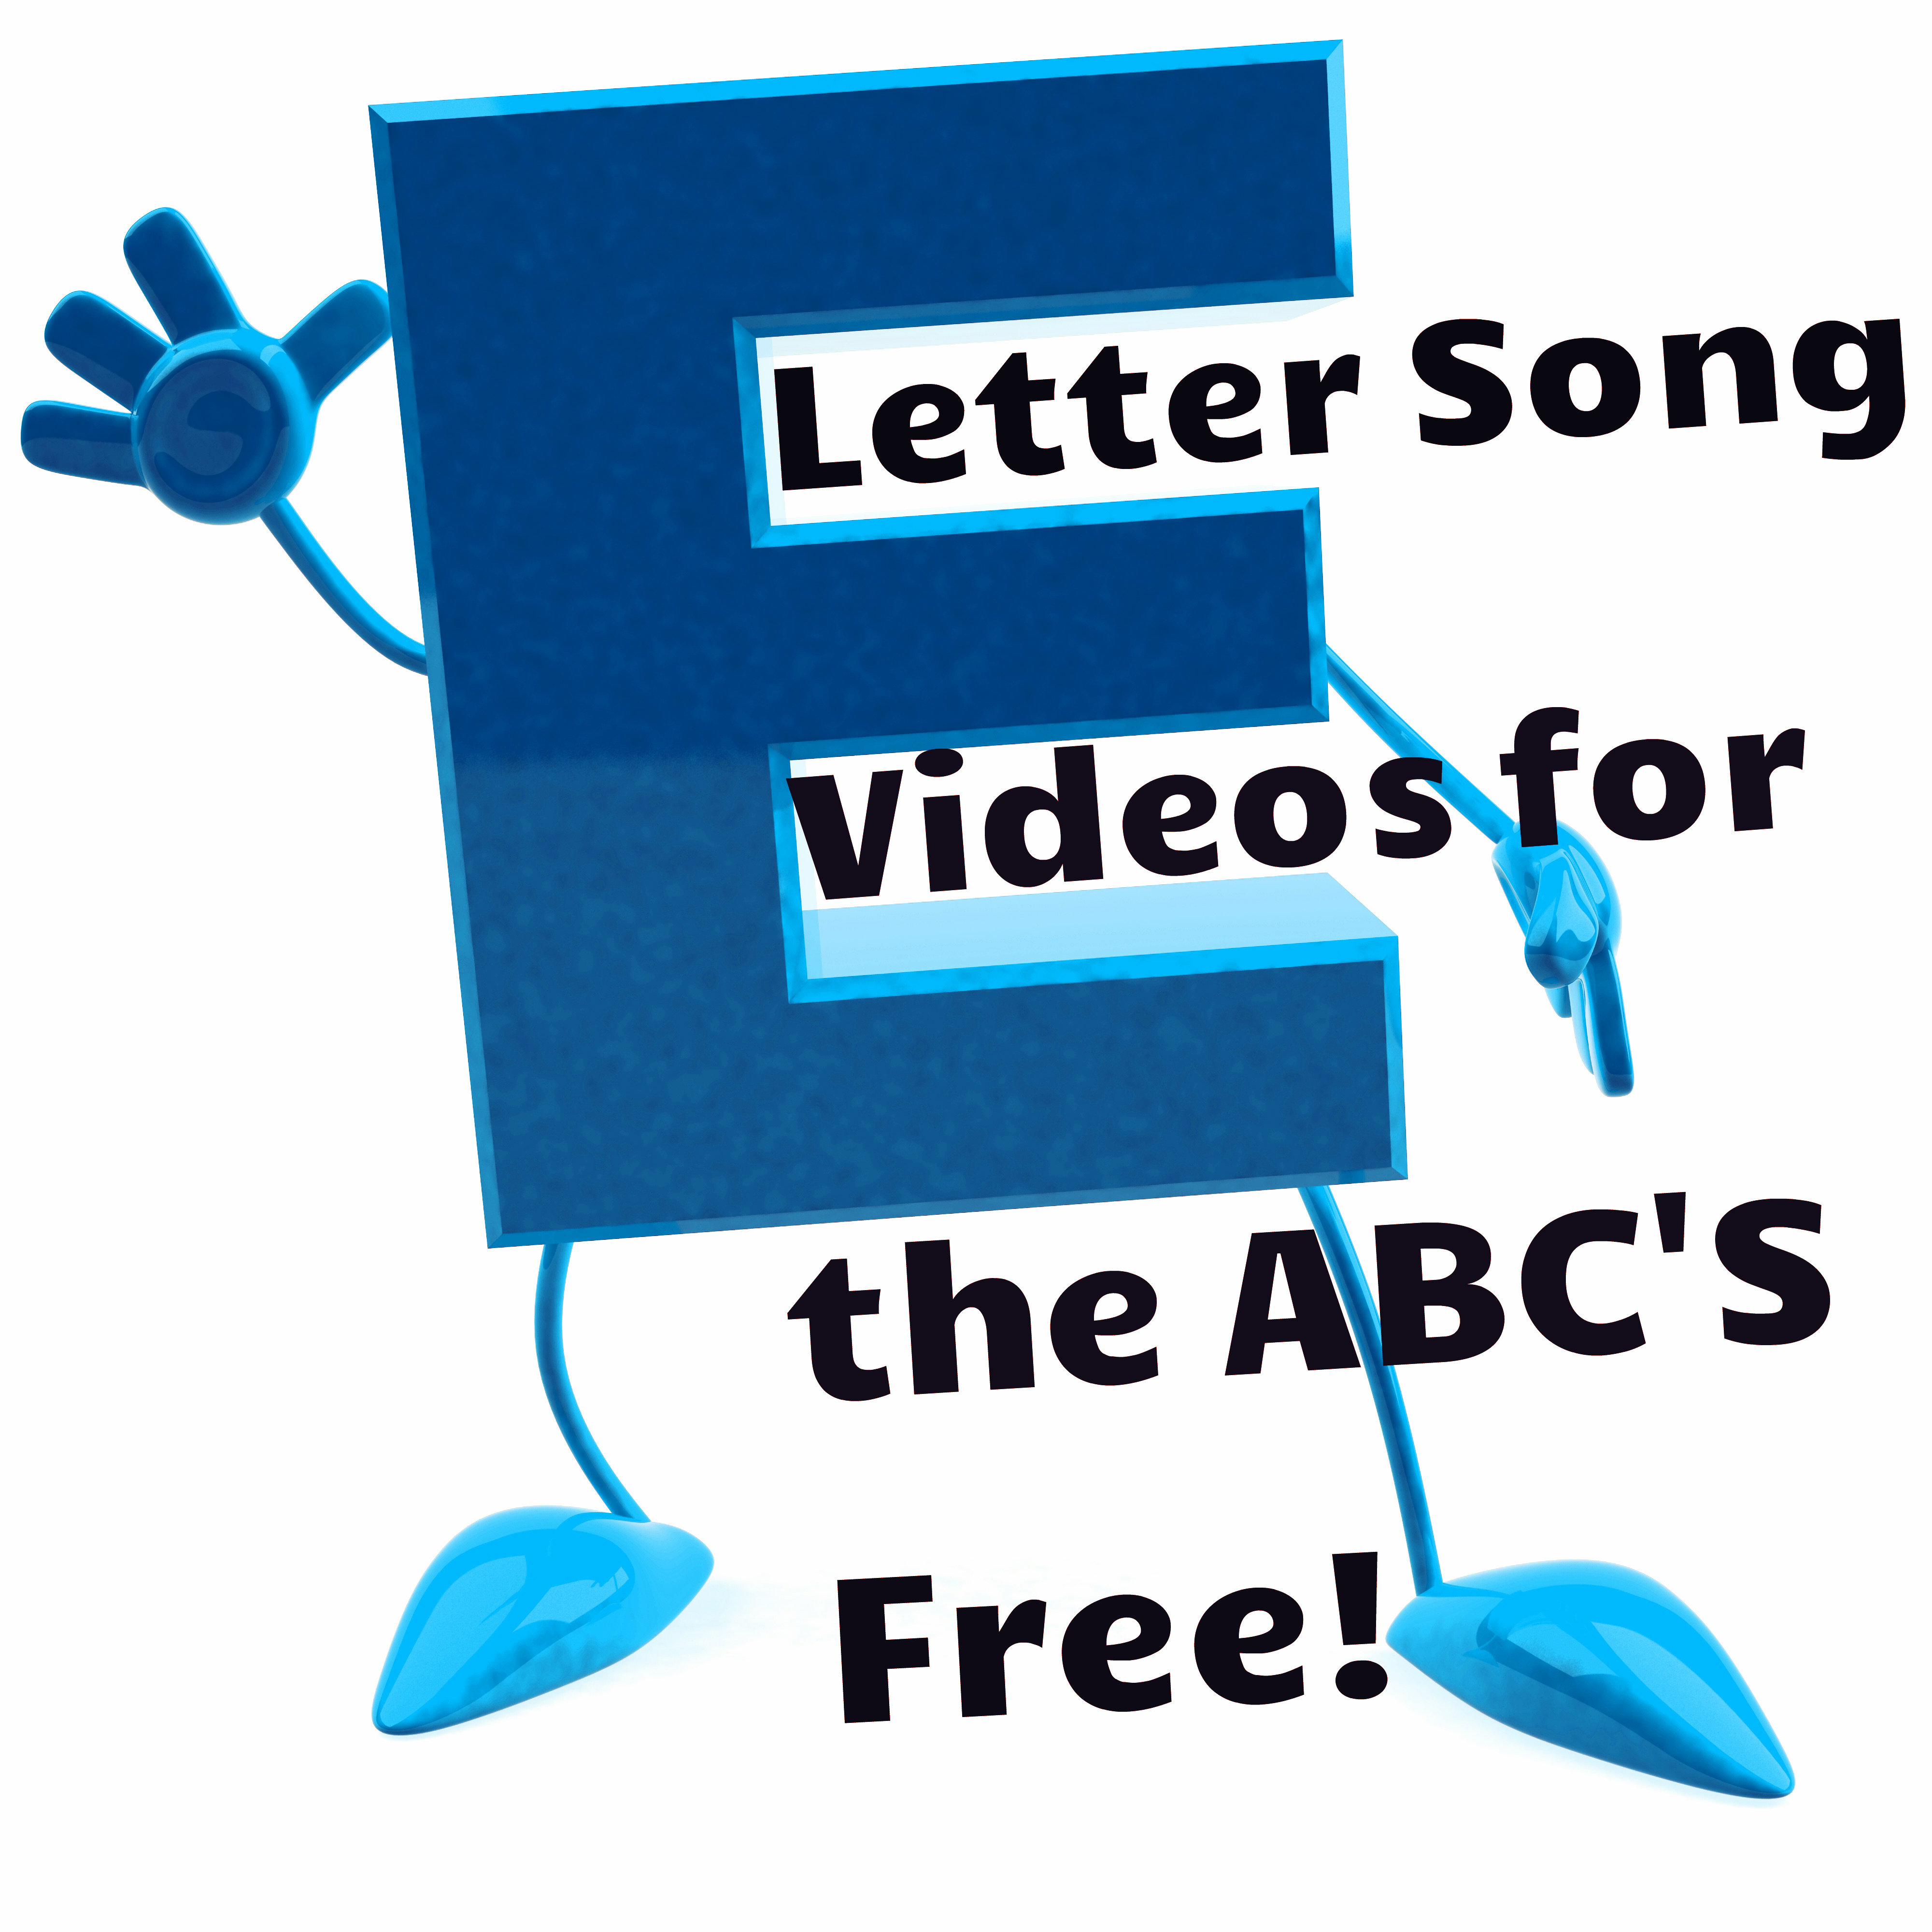 Letter song videos for the ABC's